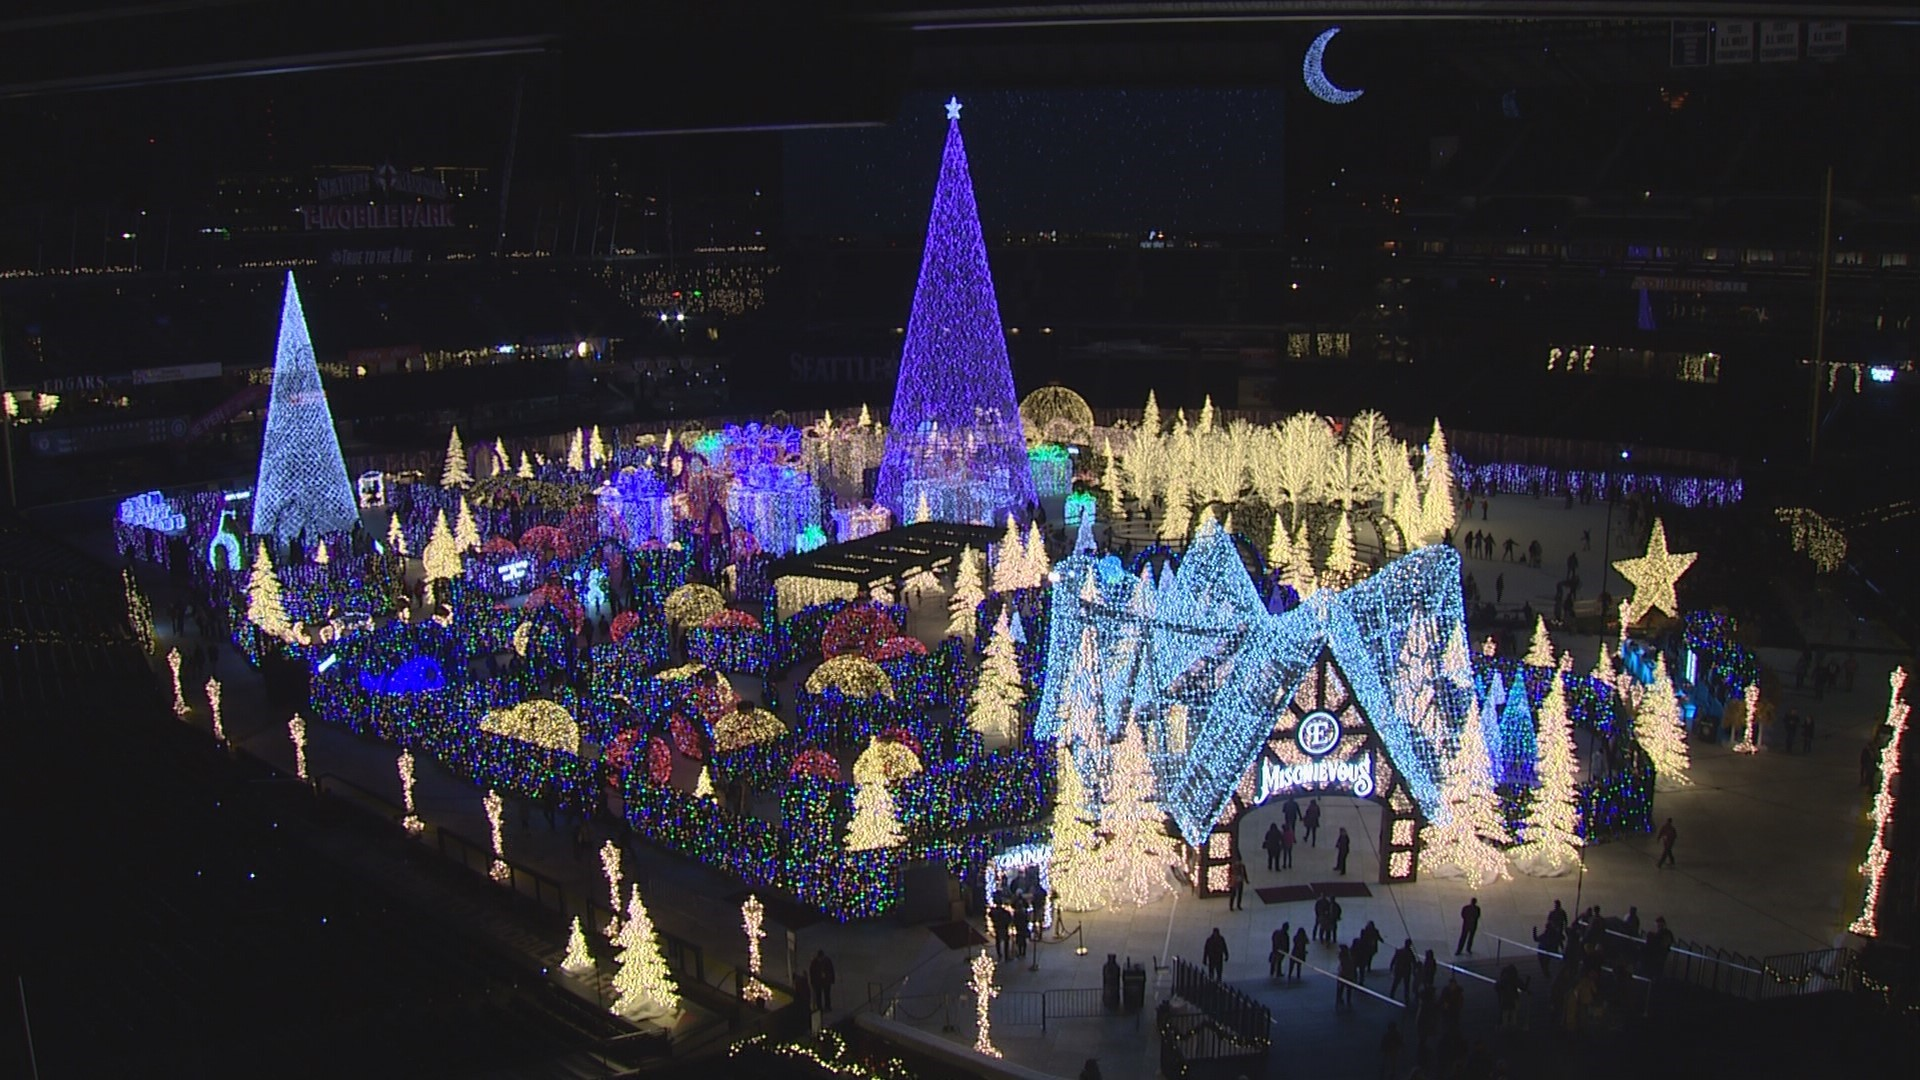 Christmas Day Bird Count 2020 Seattle World's largest Christmas maze lights up the Mariners' field